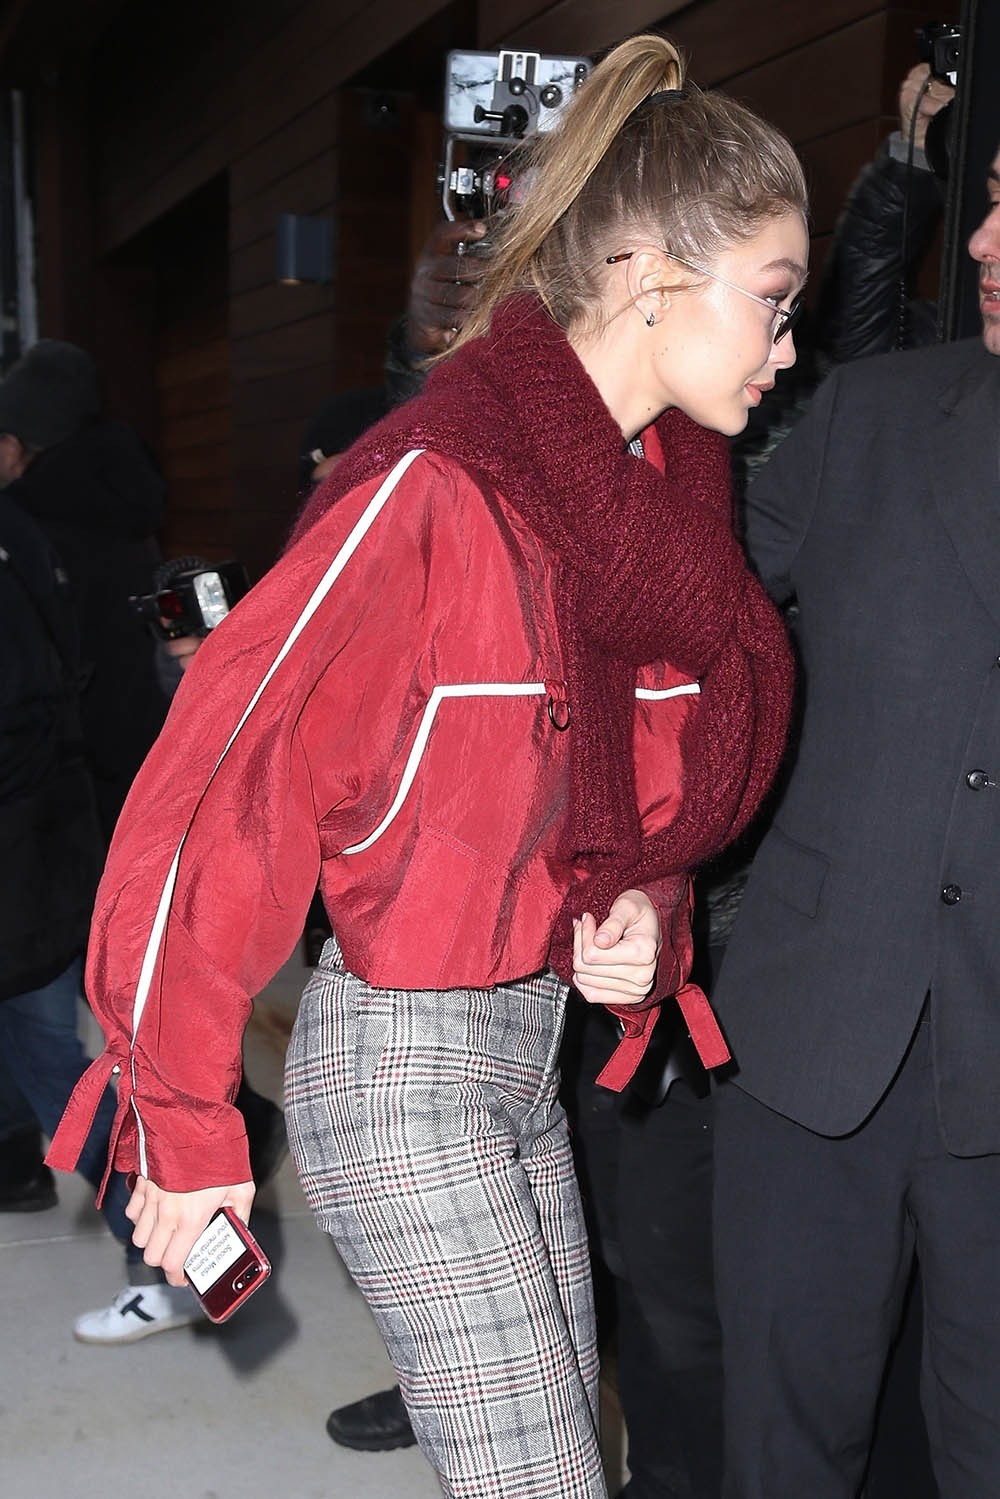 Photos: Gigi Hadid spotted with mental health warning sticker on her phone after Zayn Malik split?